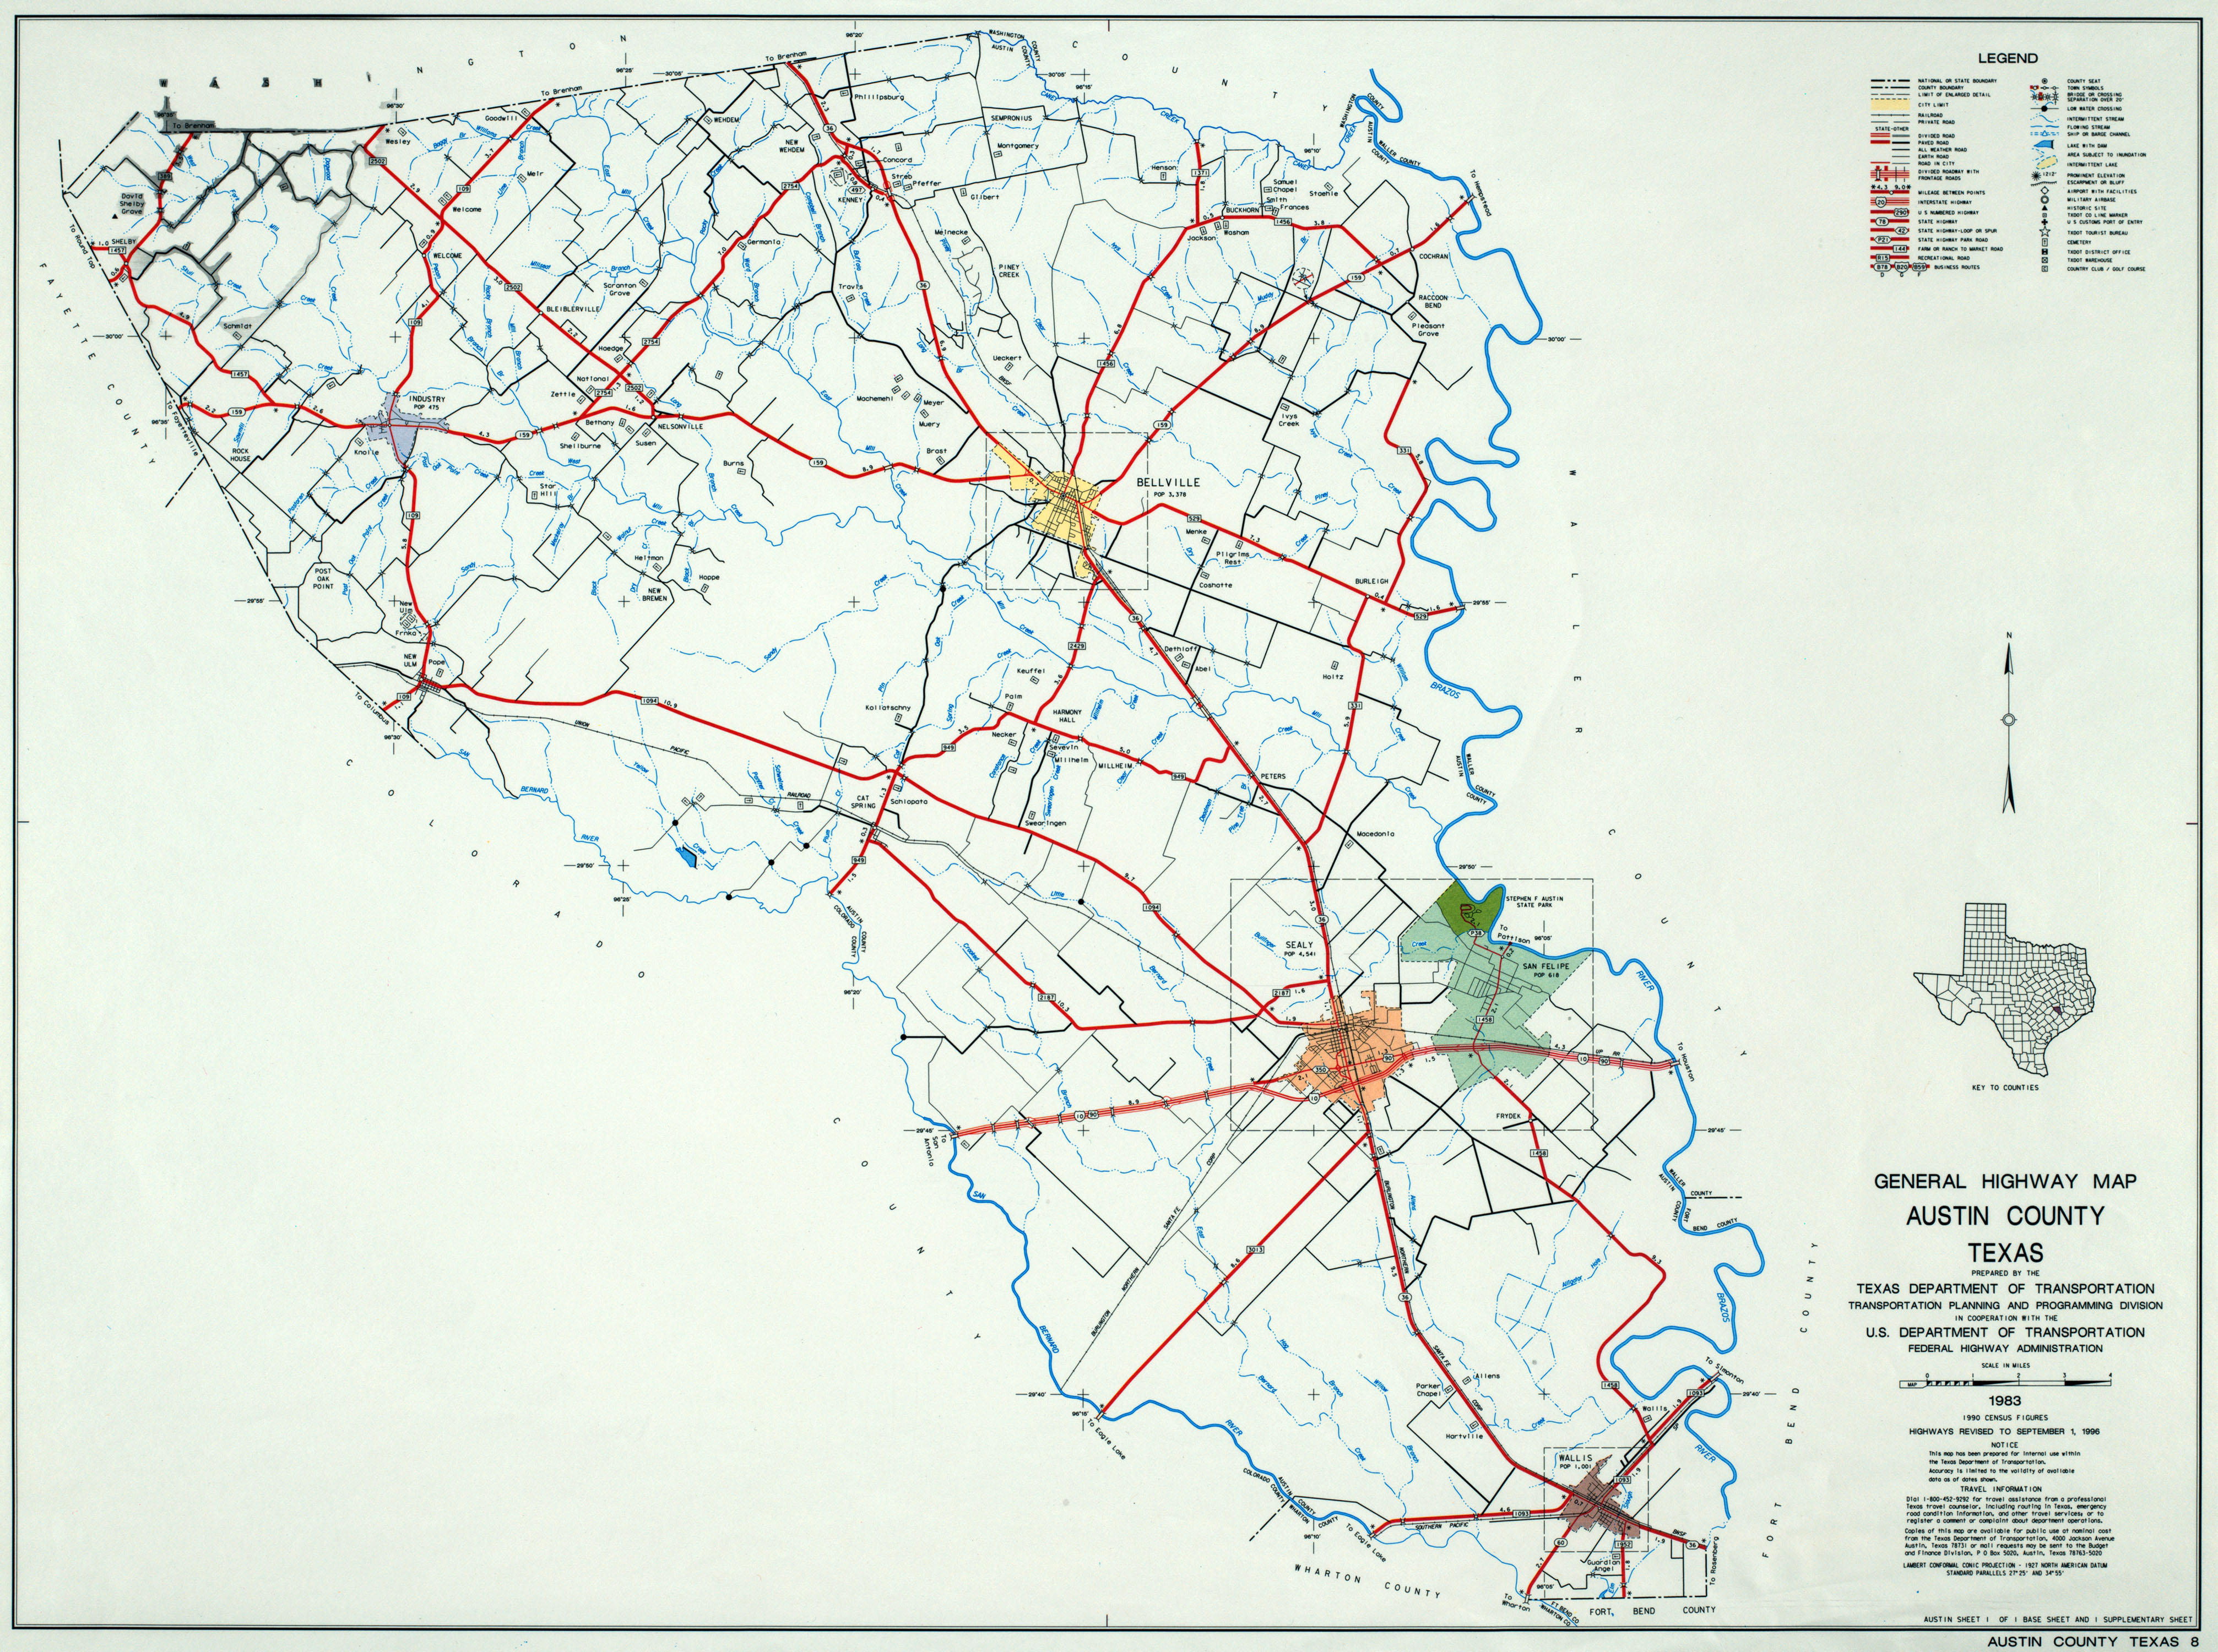 Texas County Highway Maps Browse - Perry-Castañeda Map Collection - Sealy Texas Map